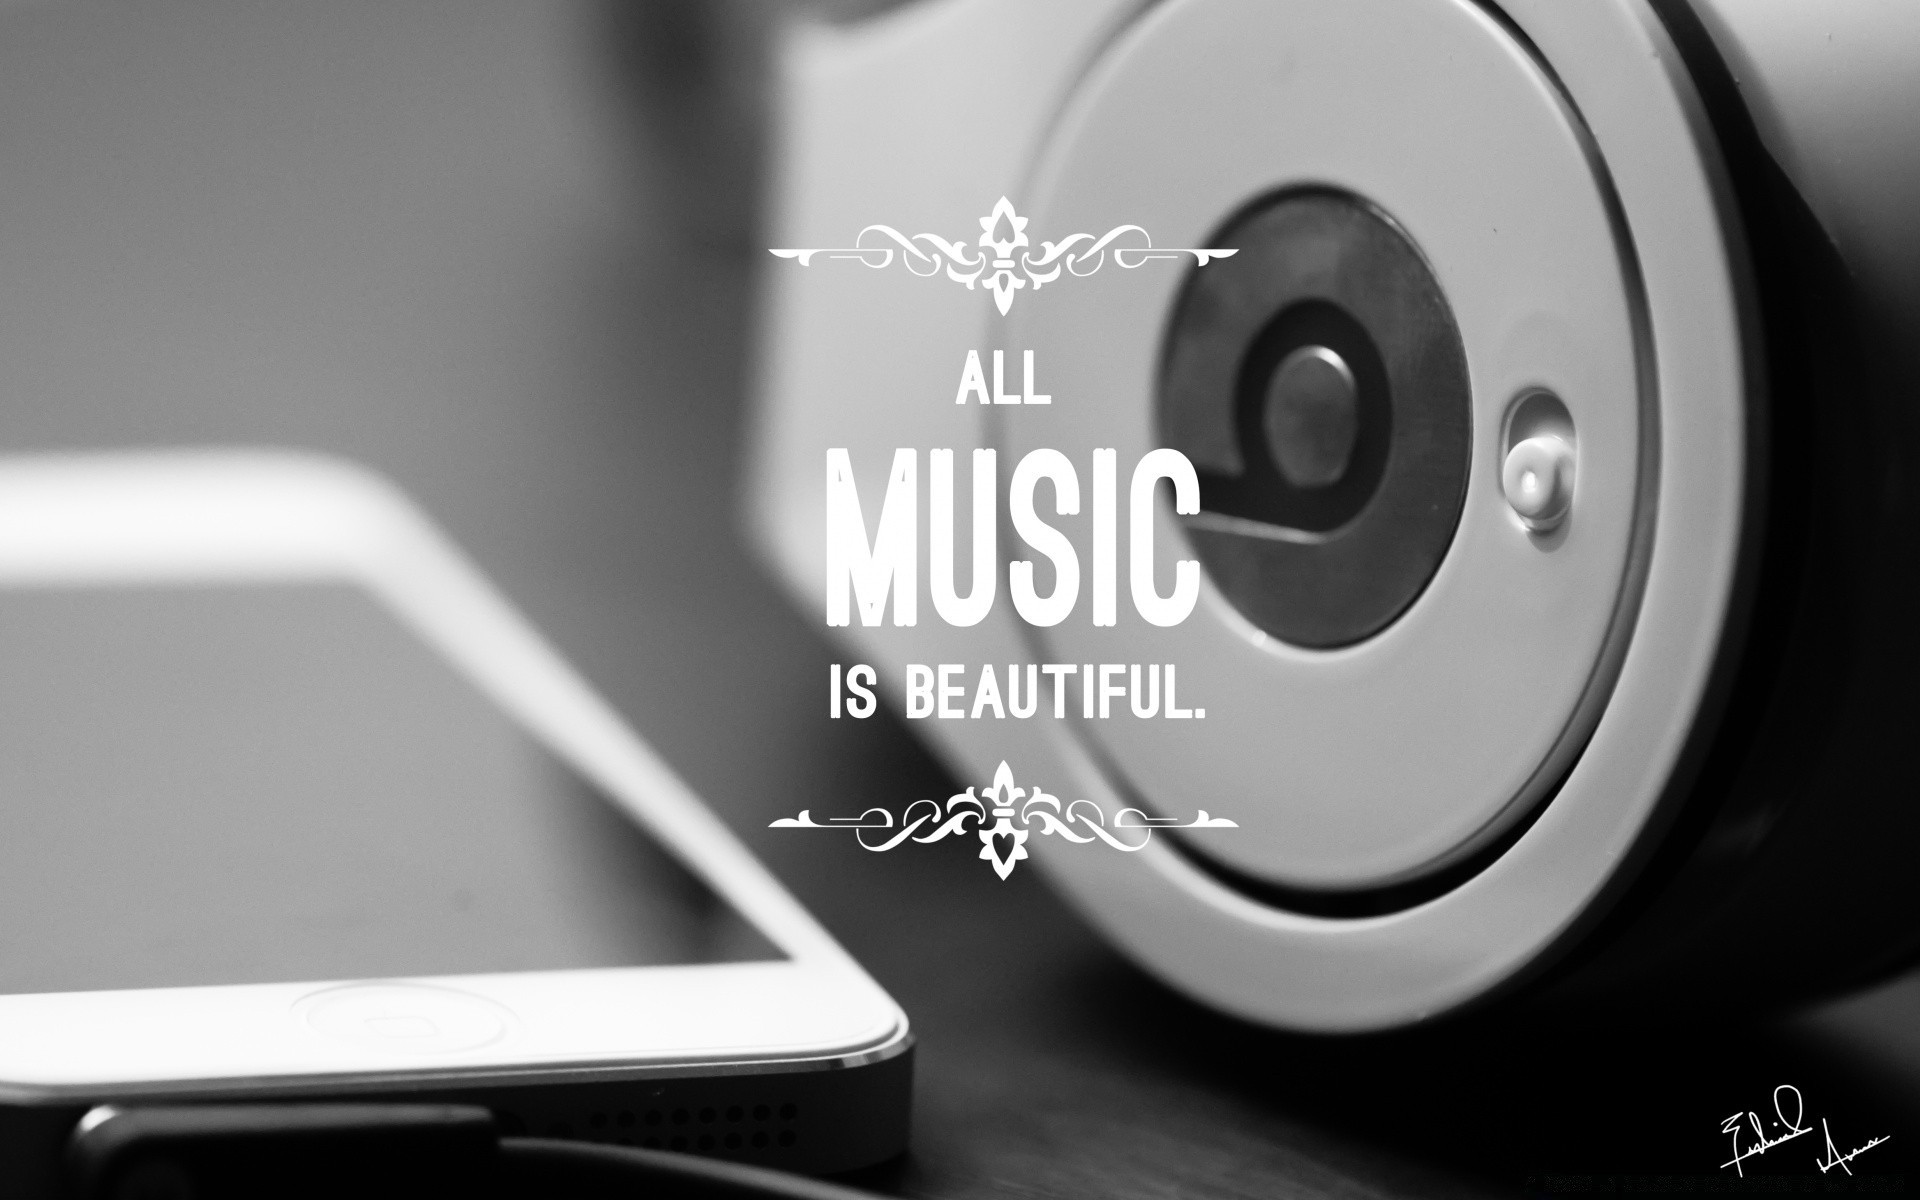 Black And White Technology Business Connection Electronics - Music Quotes Facebook Covers - HD Wallpaper